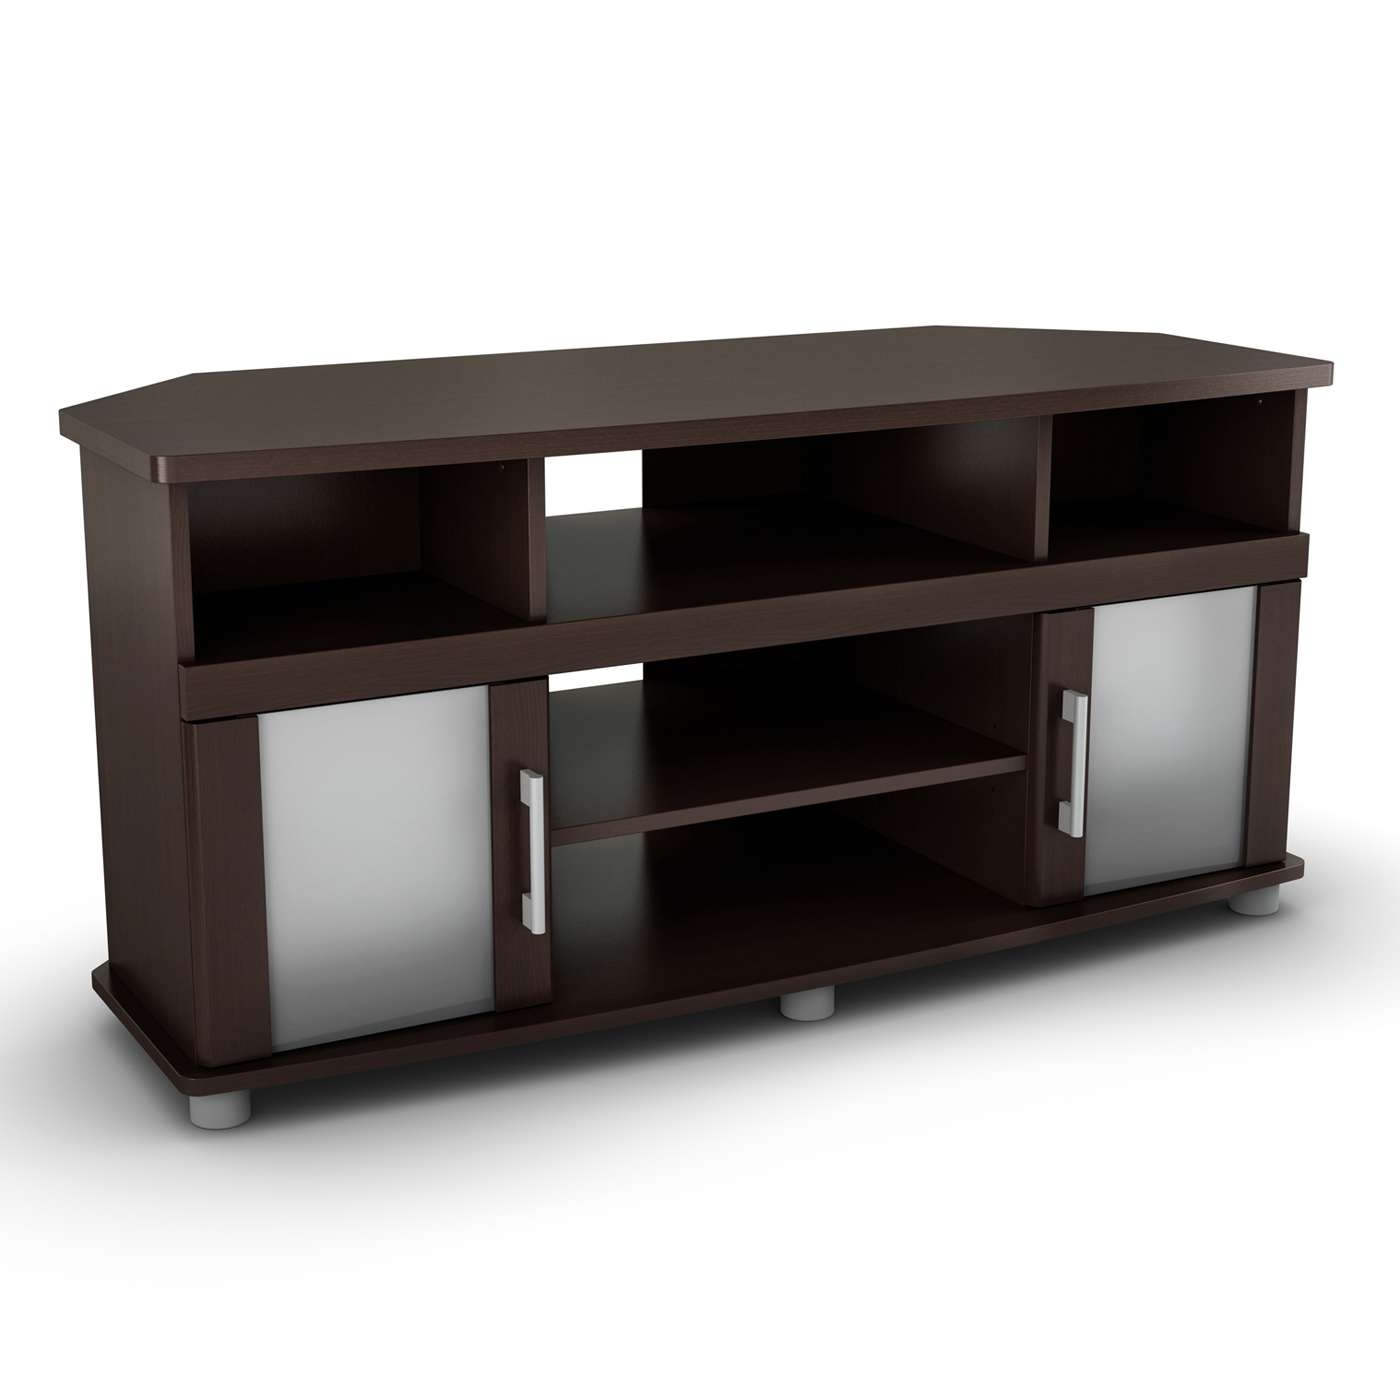 Corner Tv Stands | Lowe's Canada With Regard To Tv Stands For Corners (View 7 of 20)